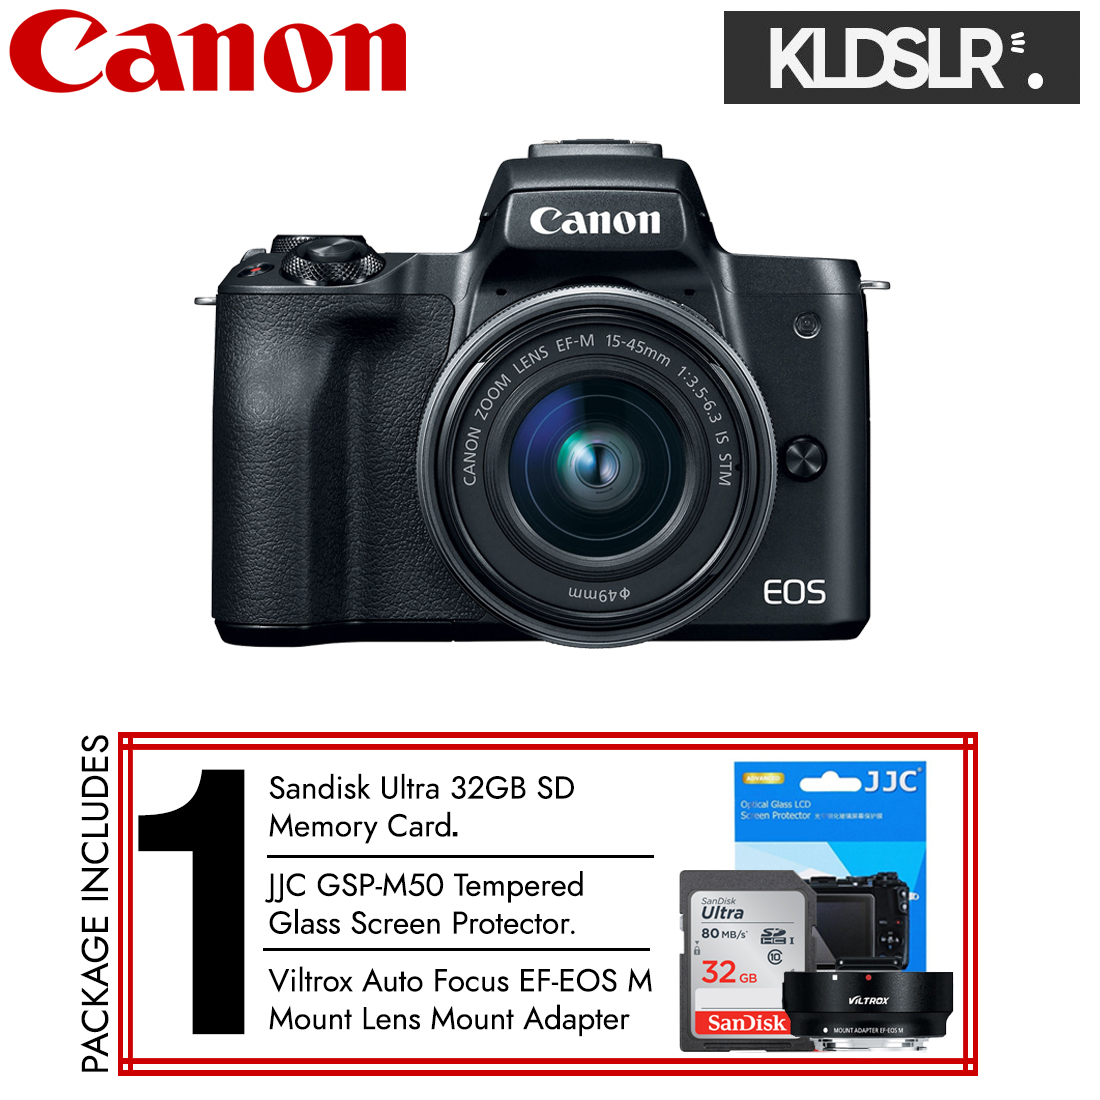 (END YEAR SALE) Canon EOS M50 with 15-45mm Lens (Black) (New 3 Months Warranty) (Free Sandisk Ultra 32GB SD Card + JJC Screen Protector + Viltrox Lens Adapter)